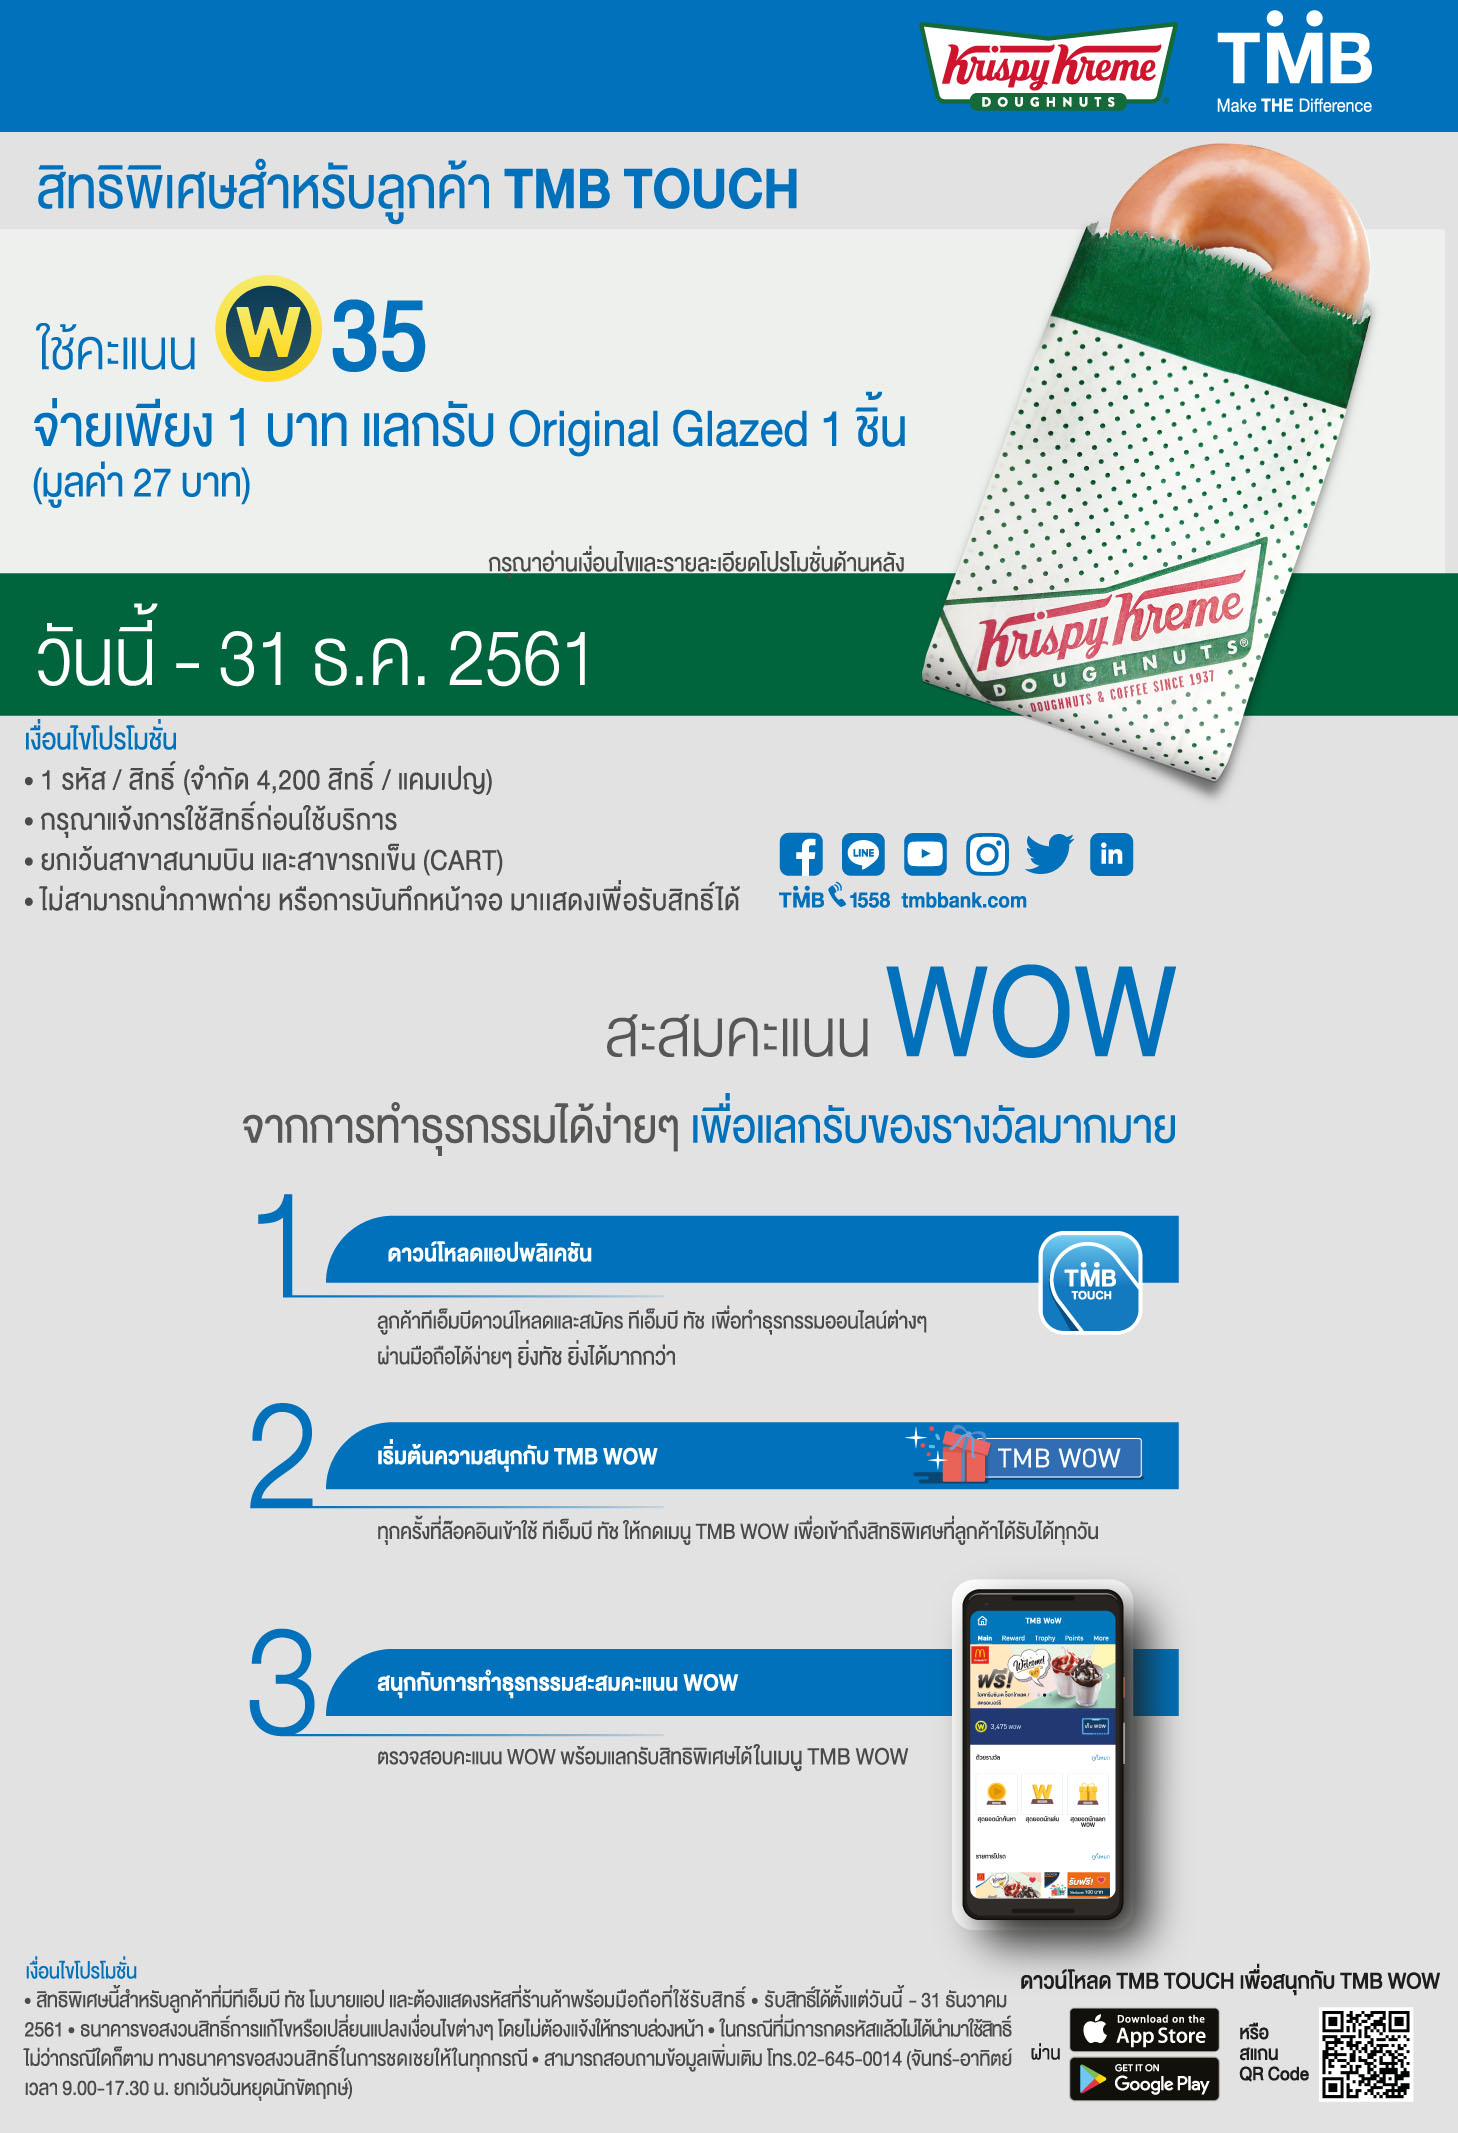 krispykreme_website_08.30.2018_tmb_full